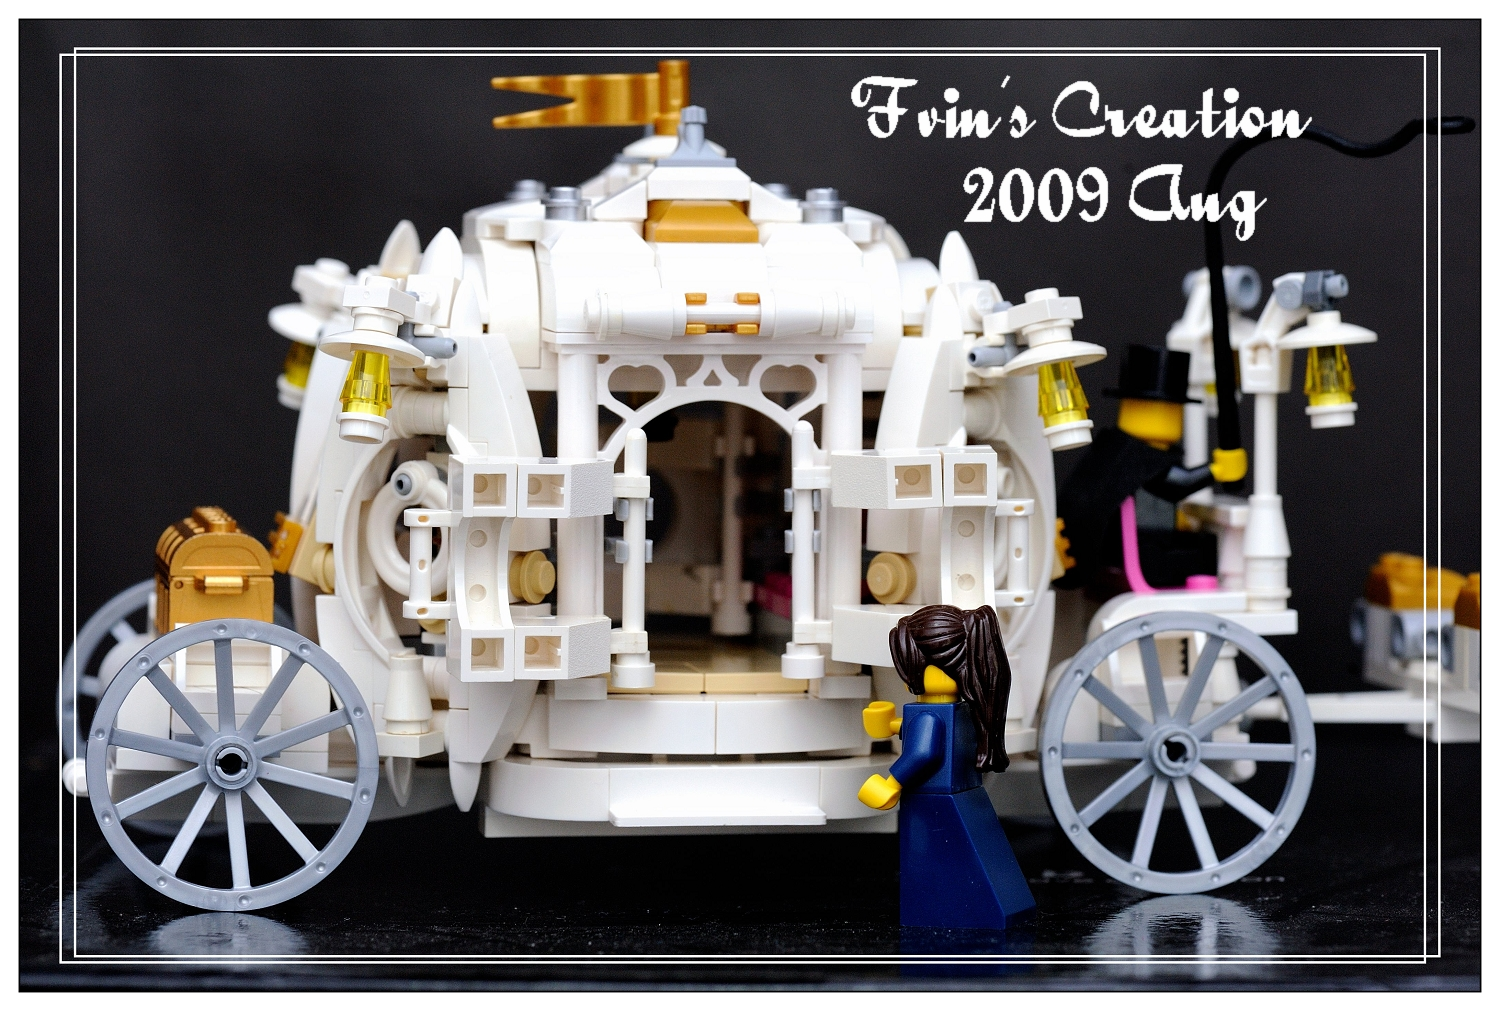 fvin_cinderella_horse_carriage13.jpg